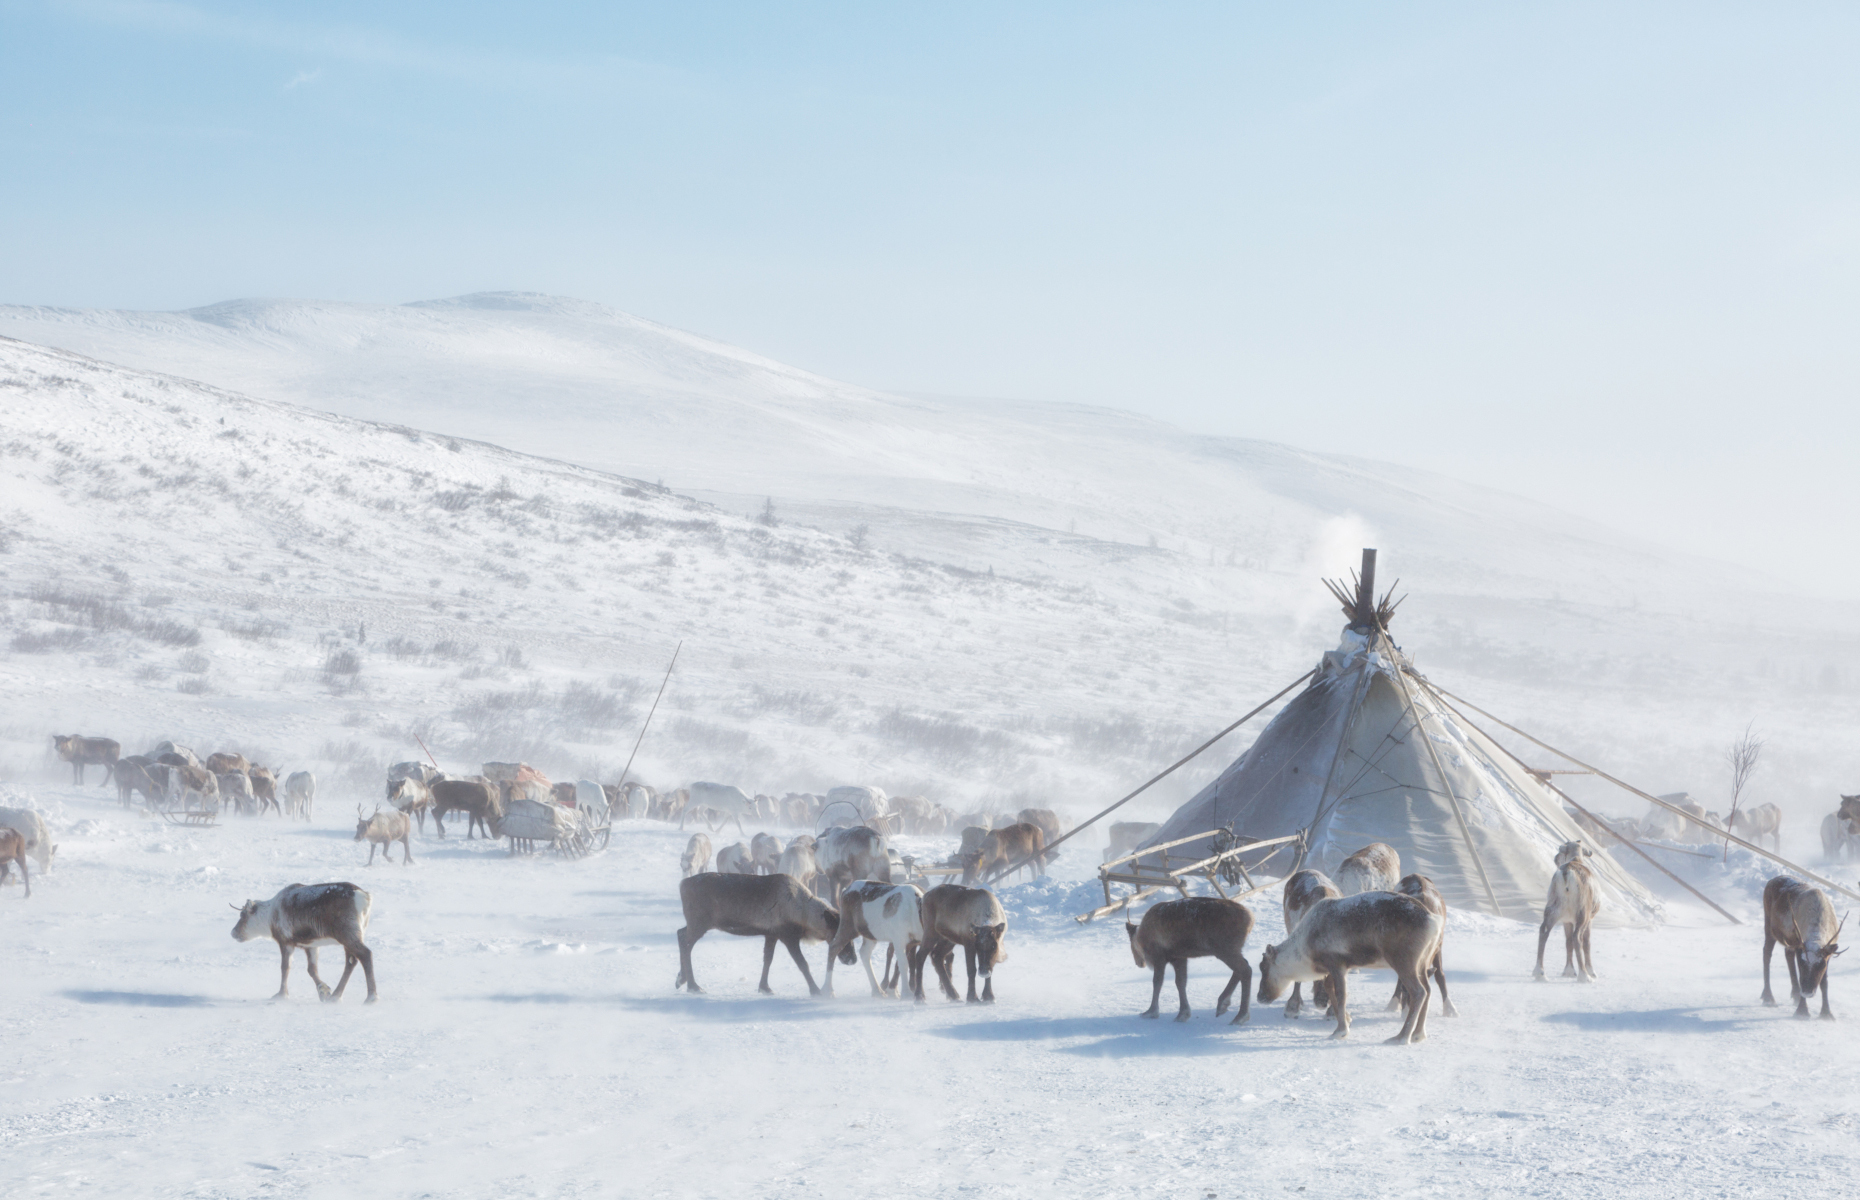 Slide 17 of 21: The Nenets are a nomadic people who migrate, year in and year out, over a distance of nearly 1,500 km (932 mi.), crossing the frozen Ob River with their caribou herds. The Nenets depend on their nearly 300,000 animals for survival, using their meat and fur for food and shelter. When the men leave to cross the Siberian arctic tundra, they leave behind the women and elderly who suffer from terrible loneliness.